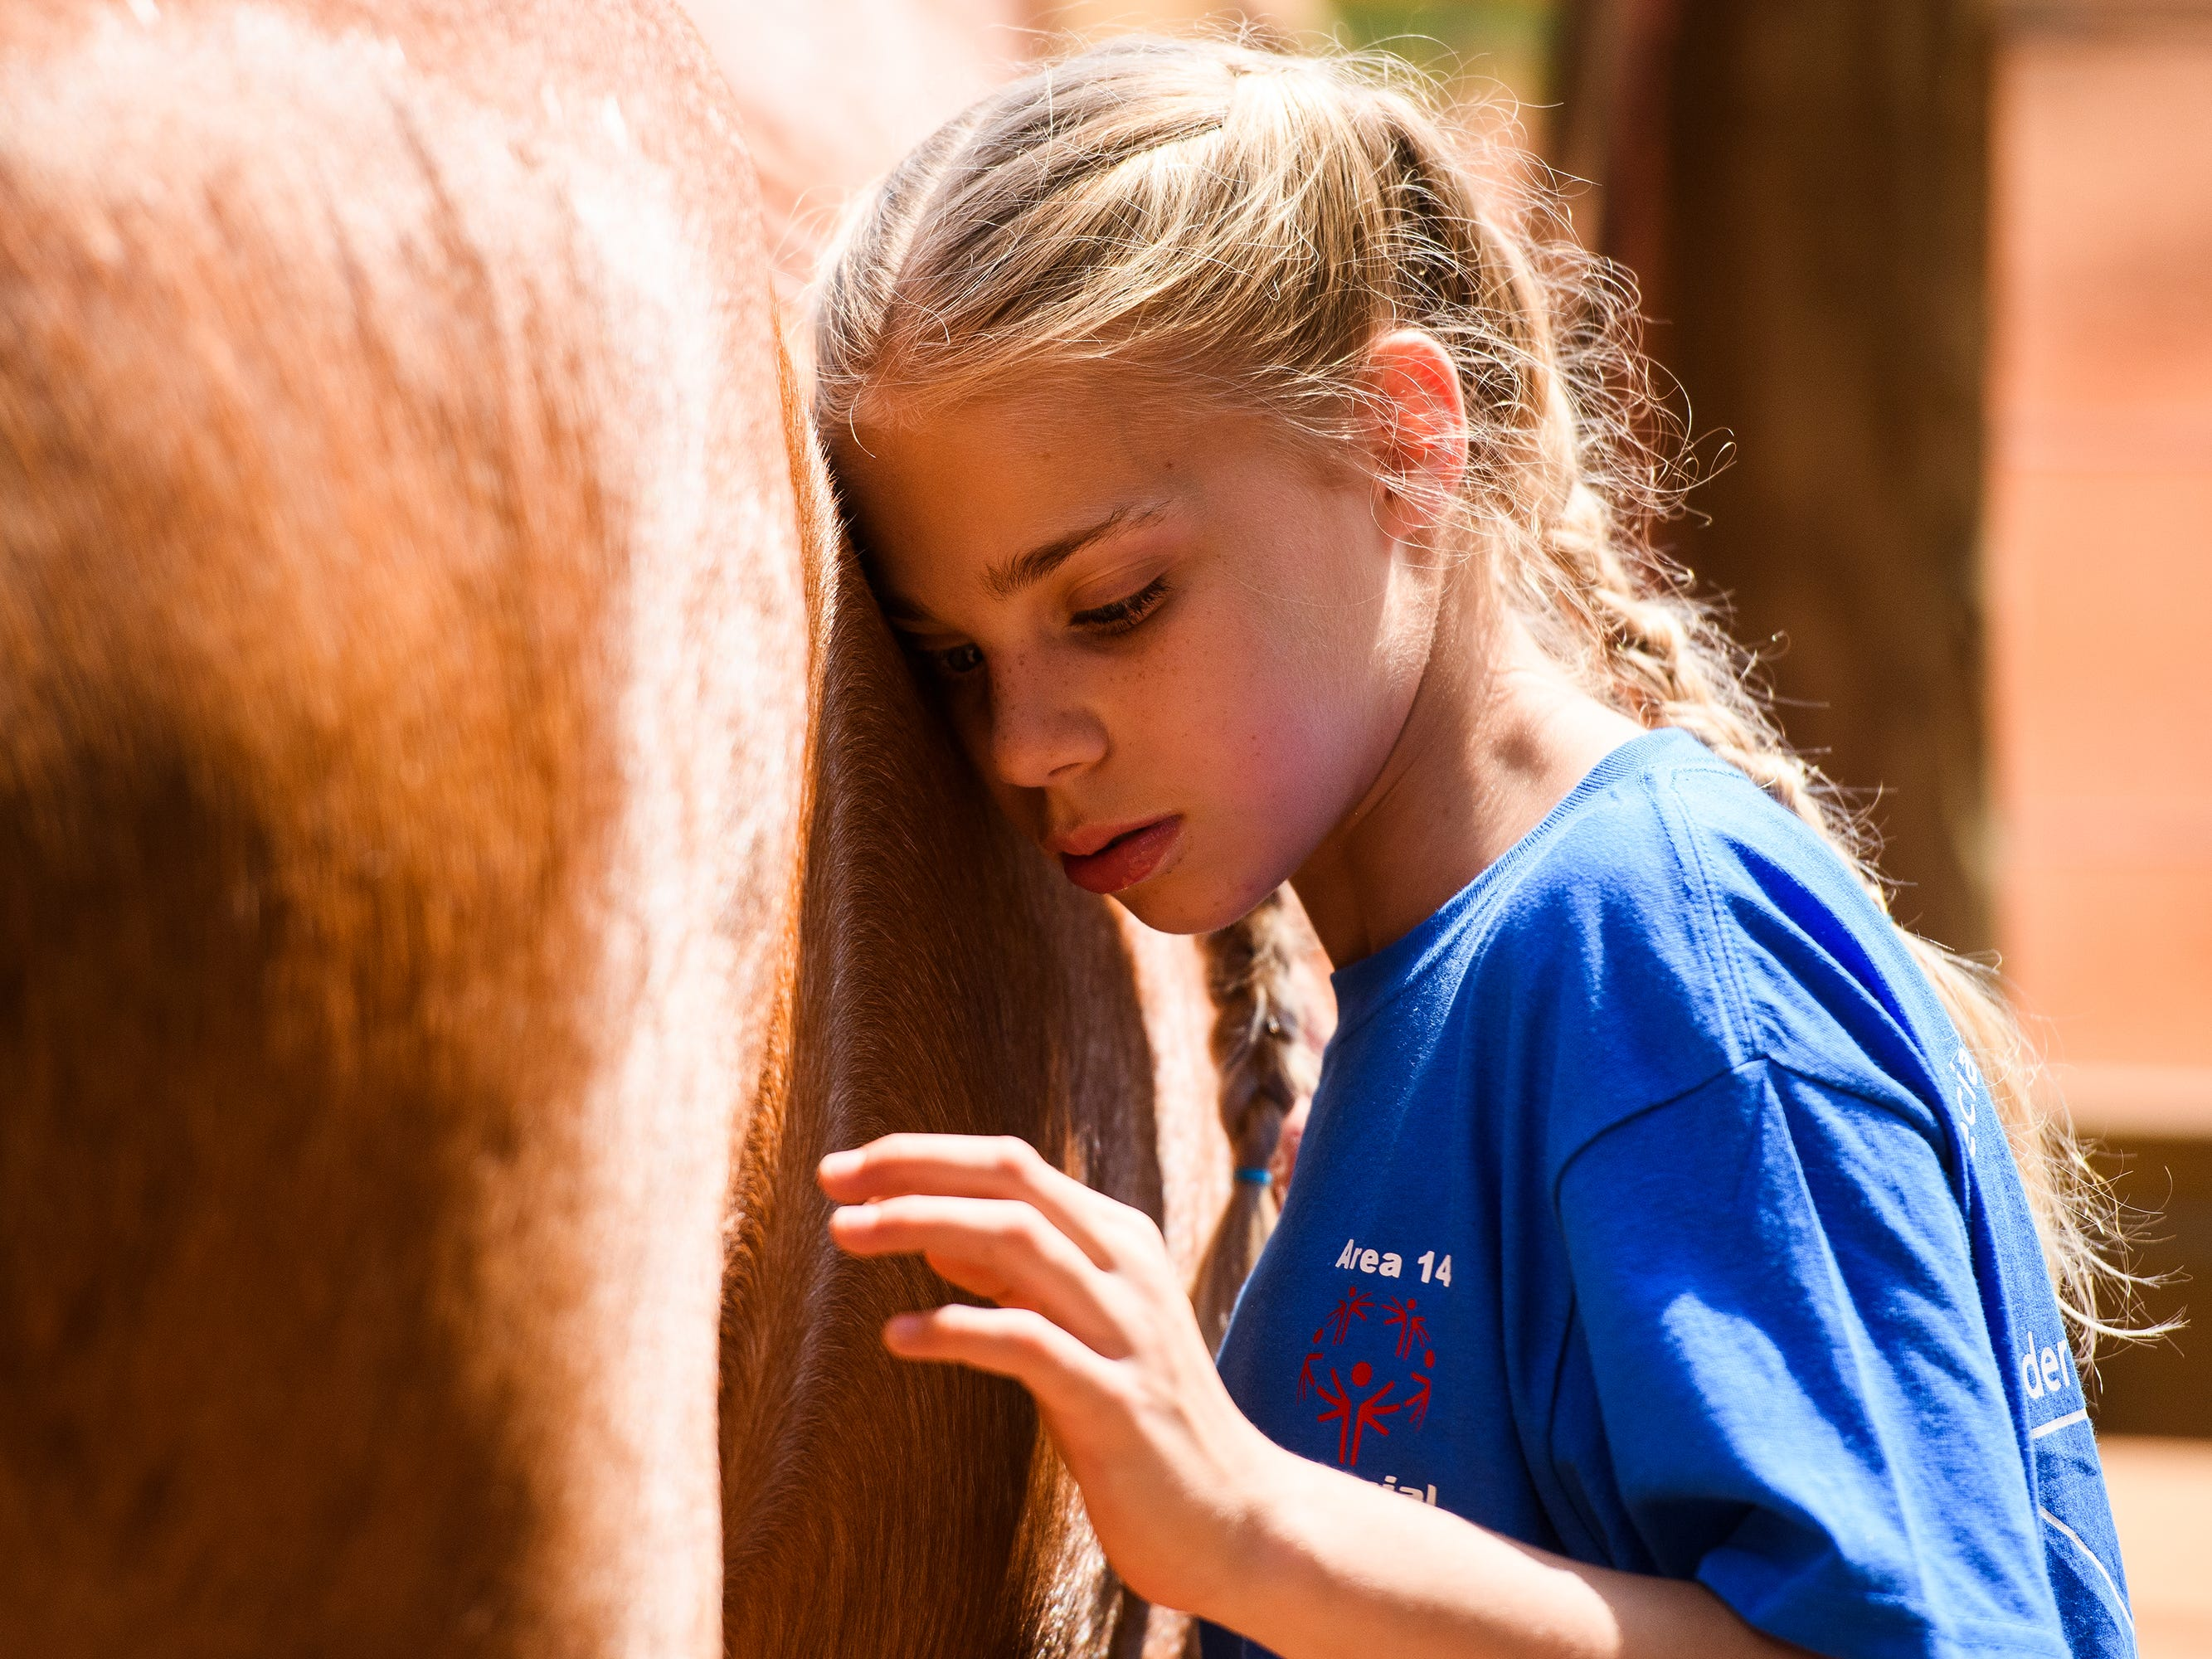 Madison Young, 10, listens to the rumblings of a horse's stomach the day of the S.H.A.R.E. therapeutic horse riding show at J Rest Farm in Anderson, Saturday, May 4, 2019. The show is the culmination of a 12-week program for children and adults with special needs. Students run through a course featuring a series of obstacles and, when they aren't on the saddle, learn how to groom and take care of the horses. Often, students develop deep bonds with the horses as they advance through the program.